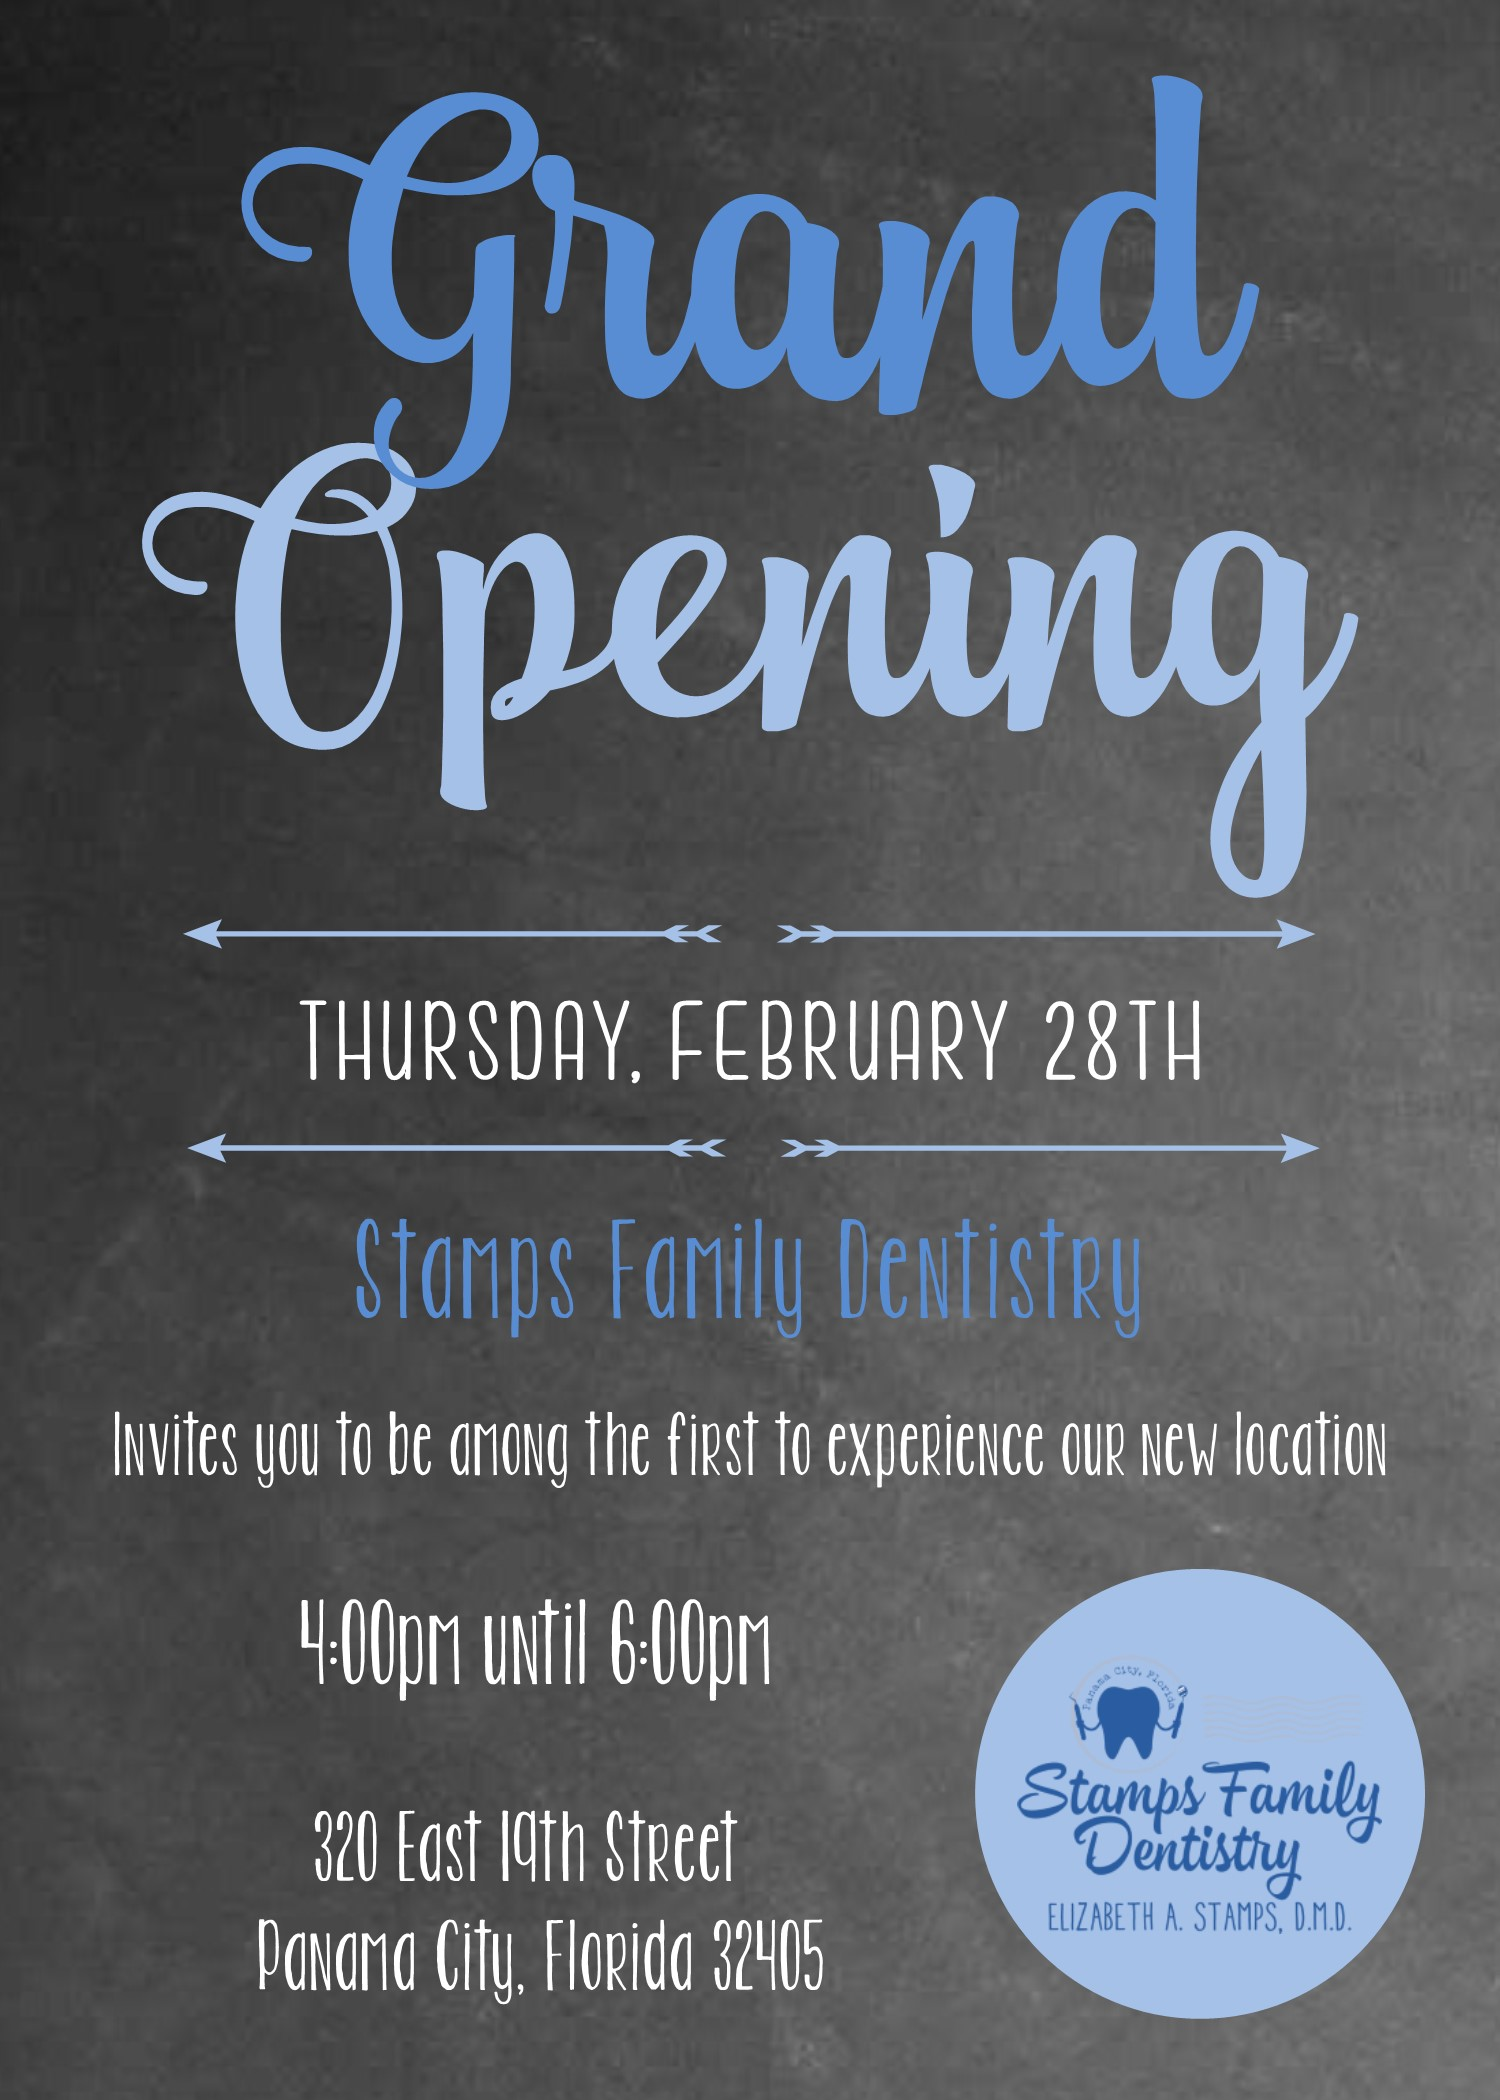 Stamps Family Dentistry Grand Opening and Open House